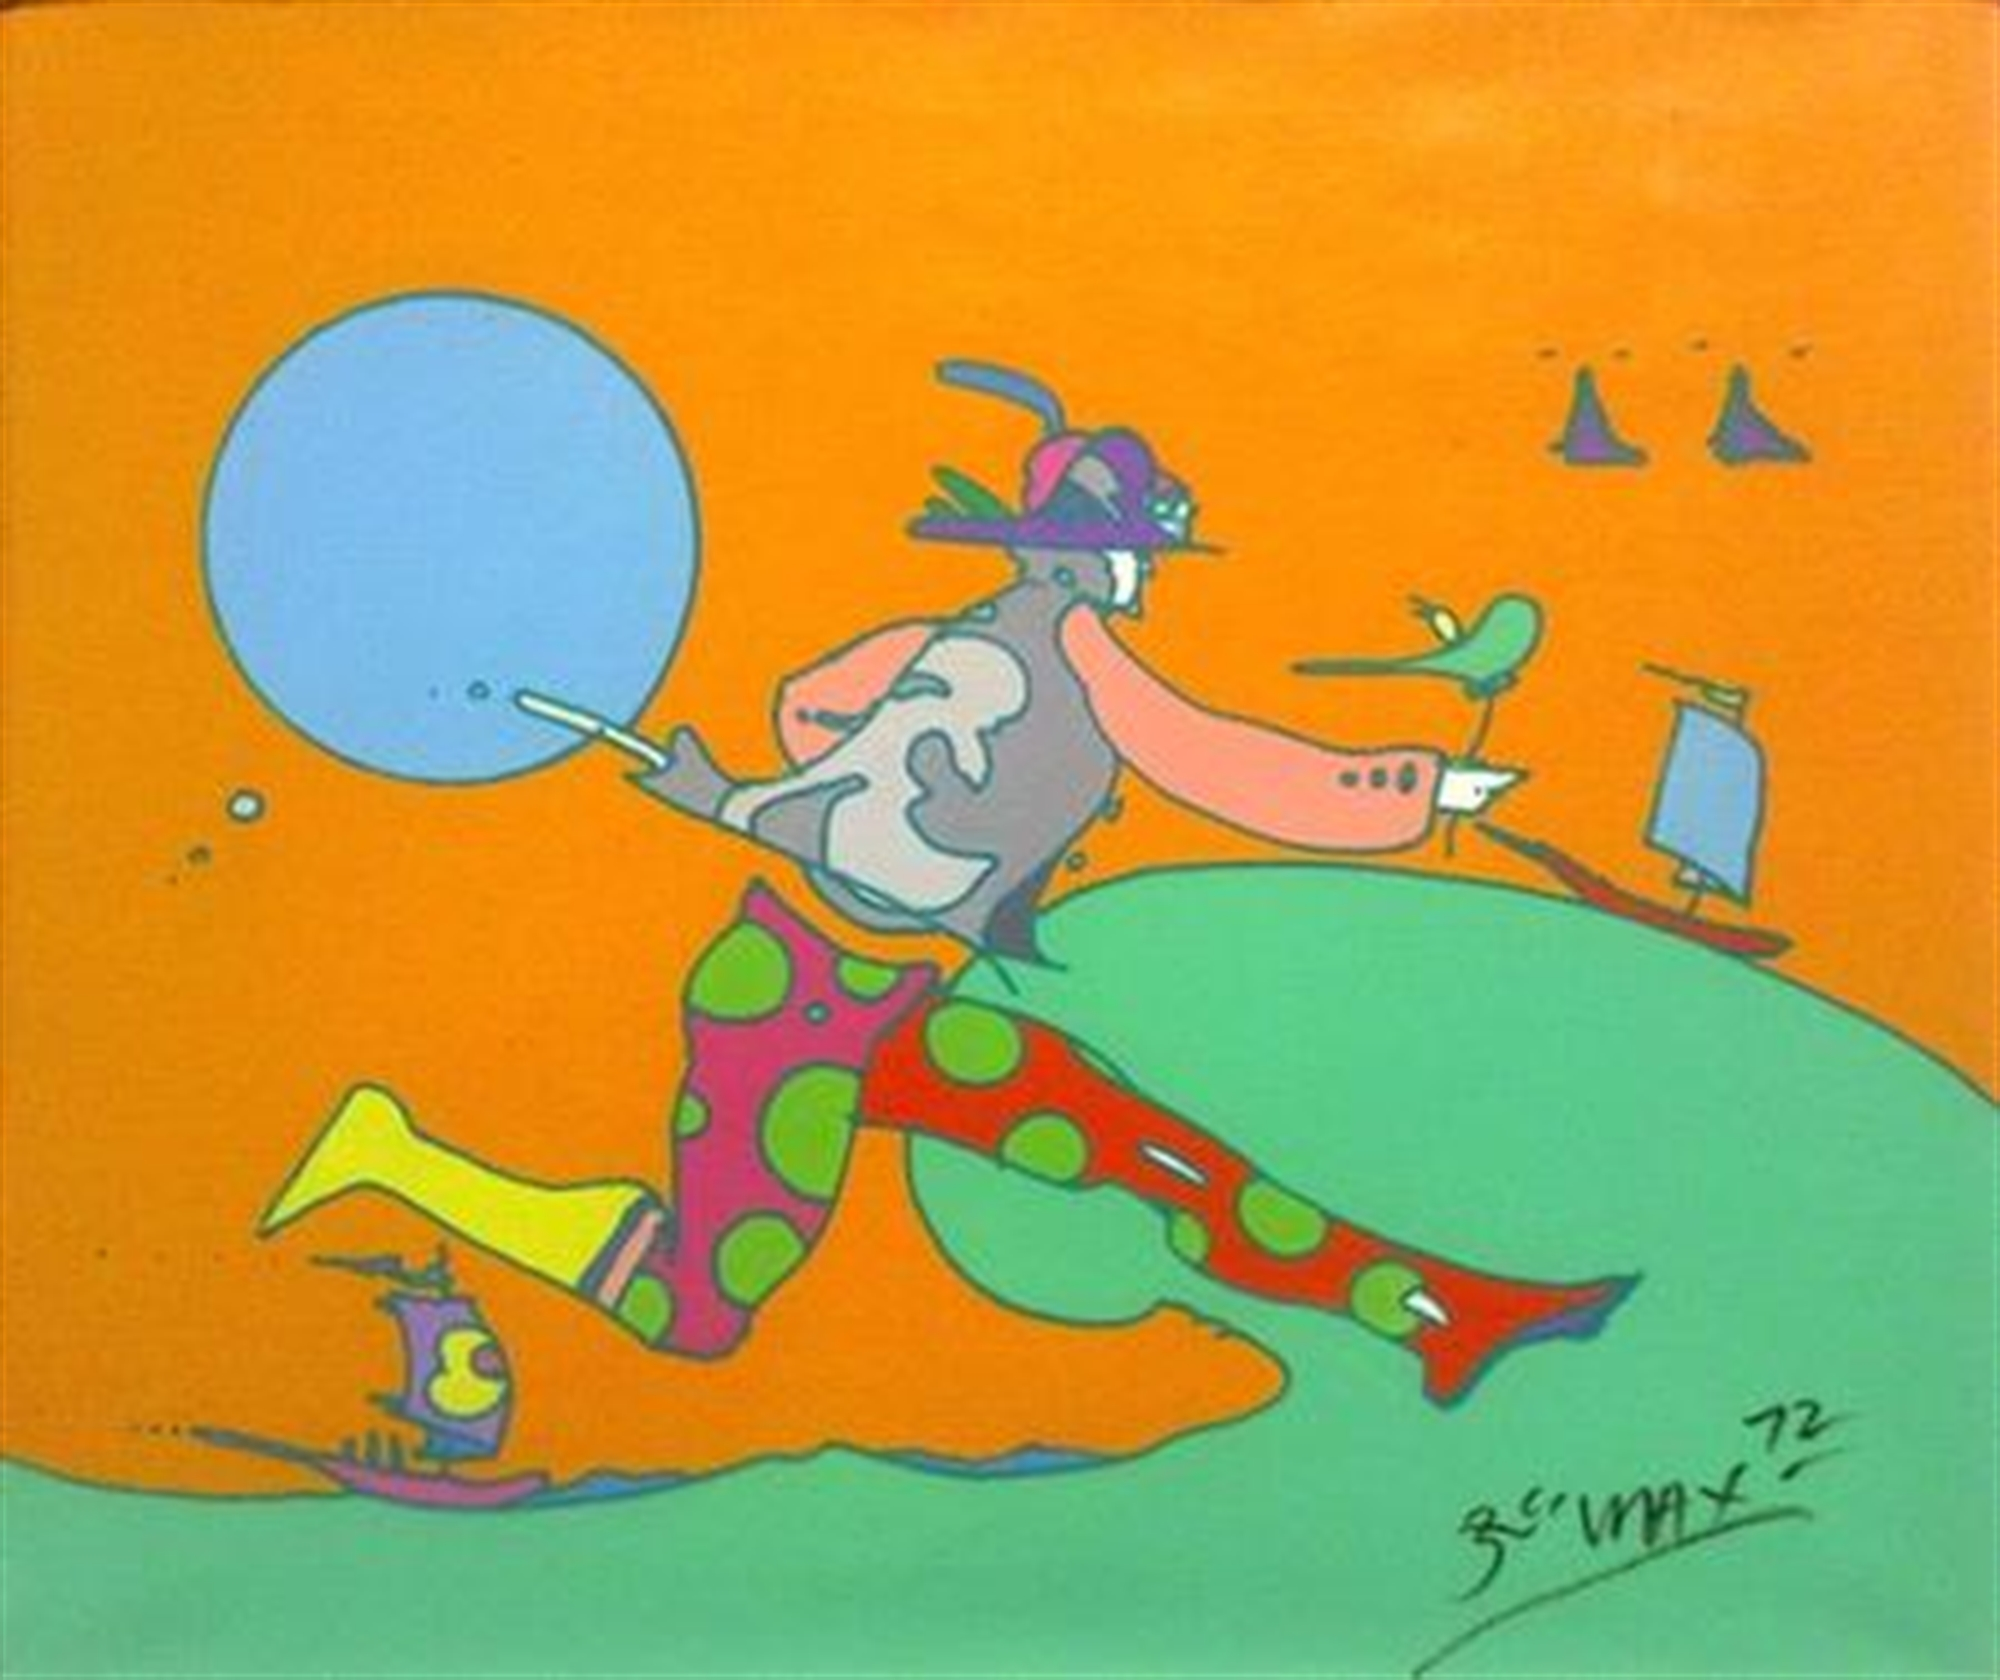 Jumper by Peter Max